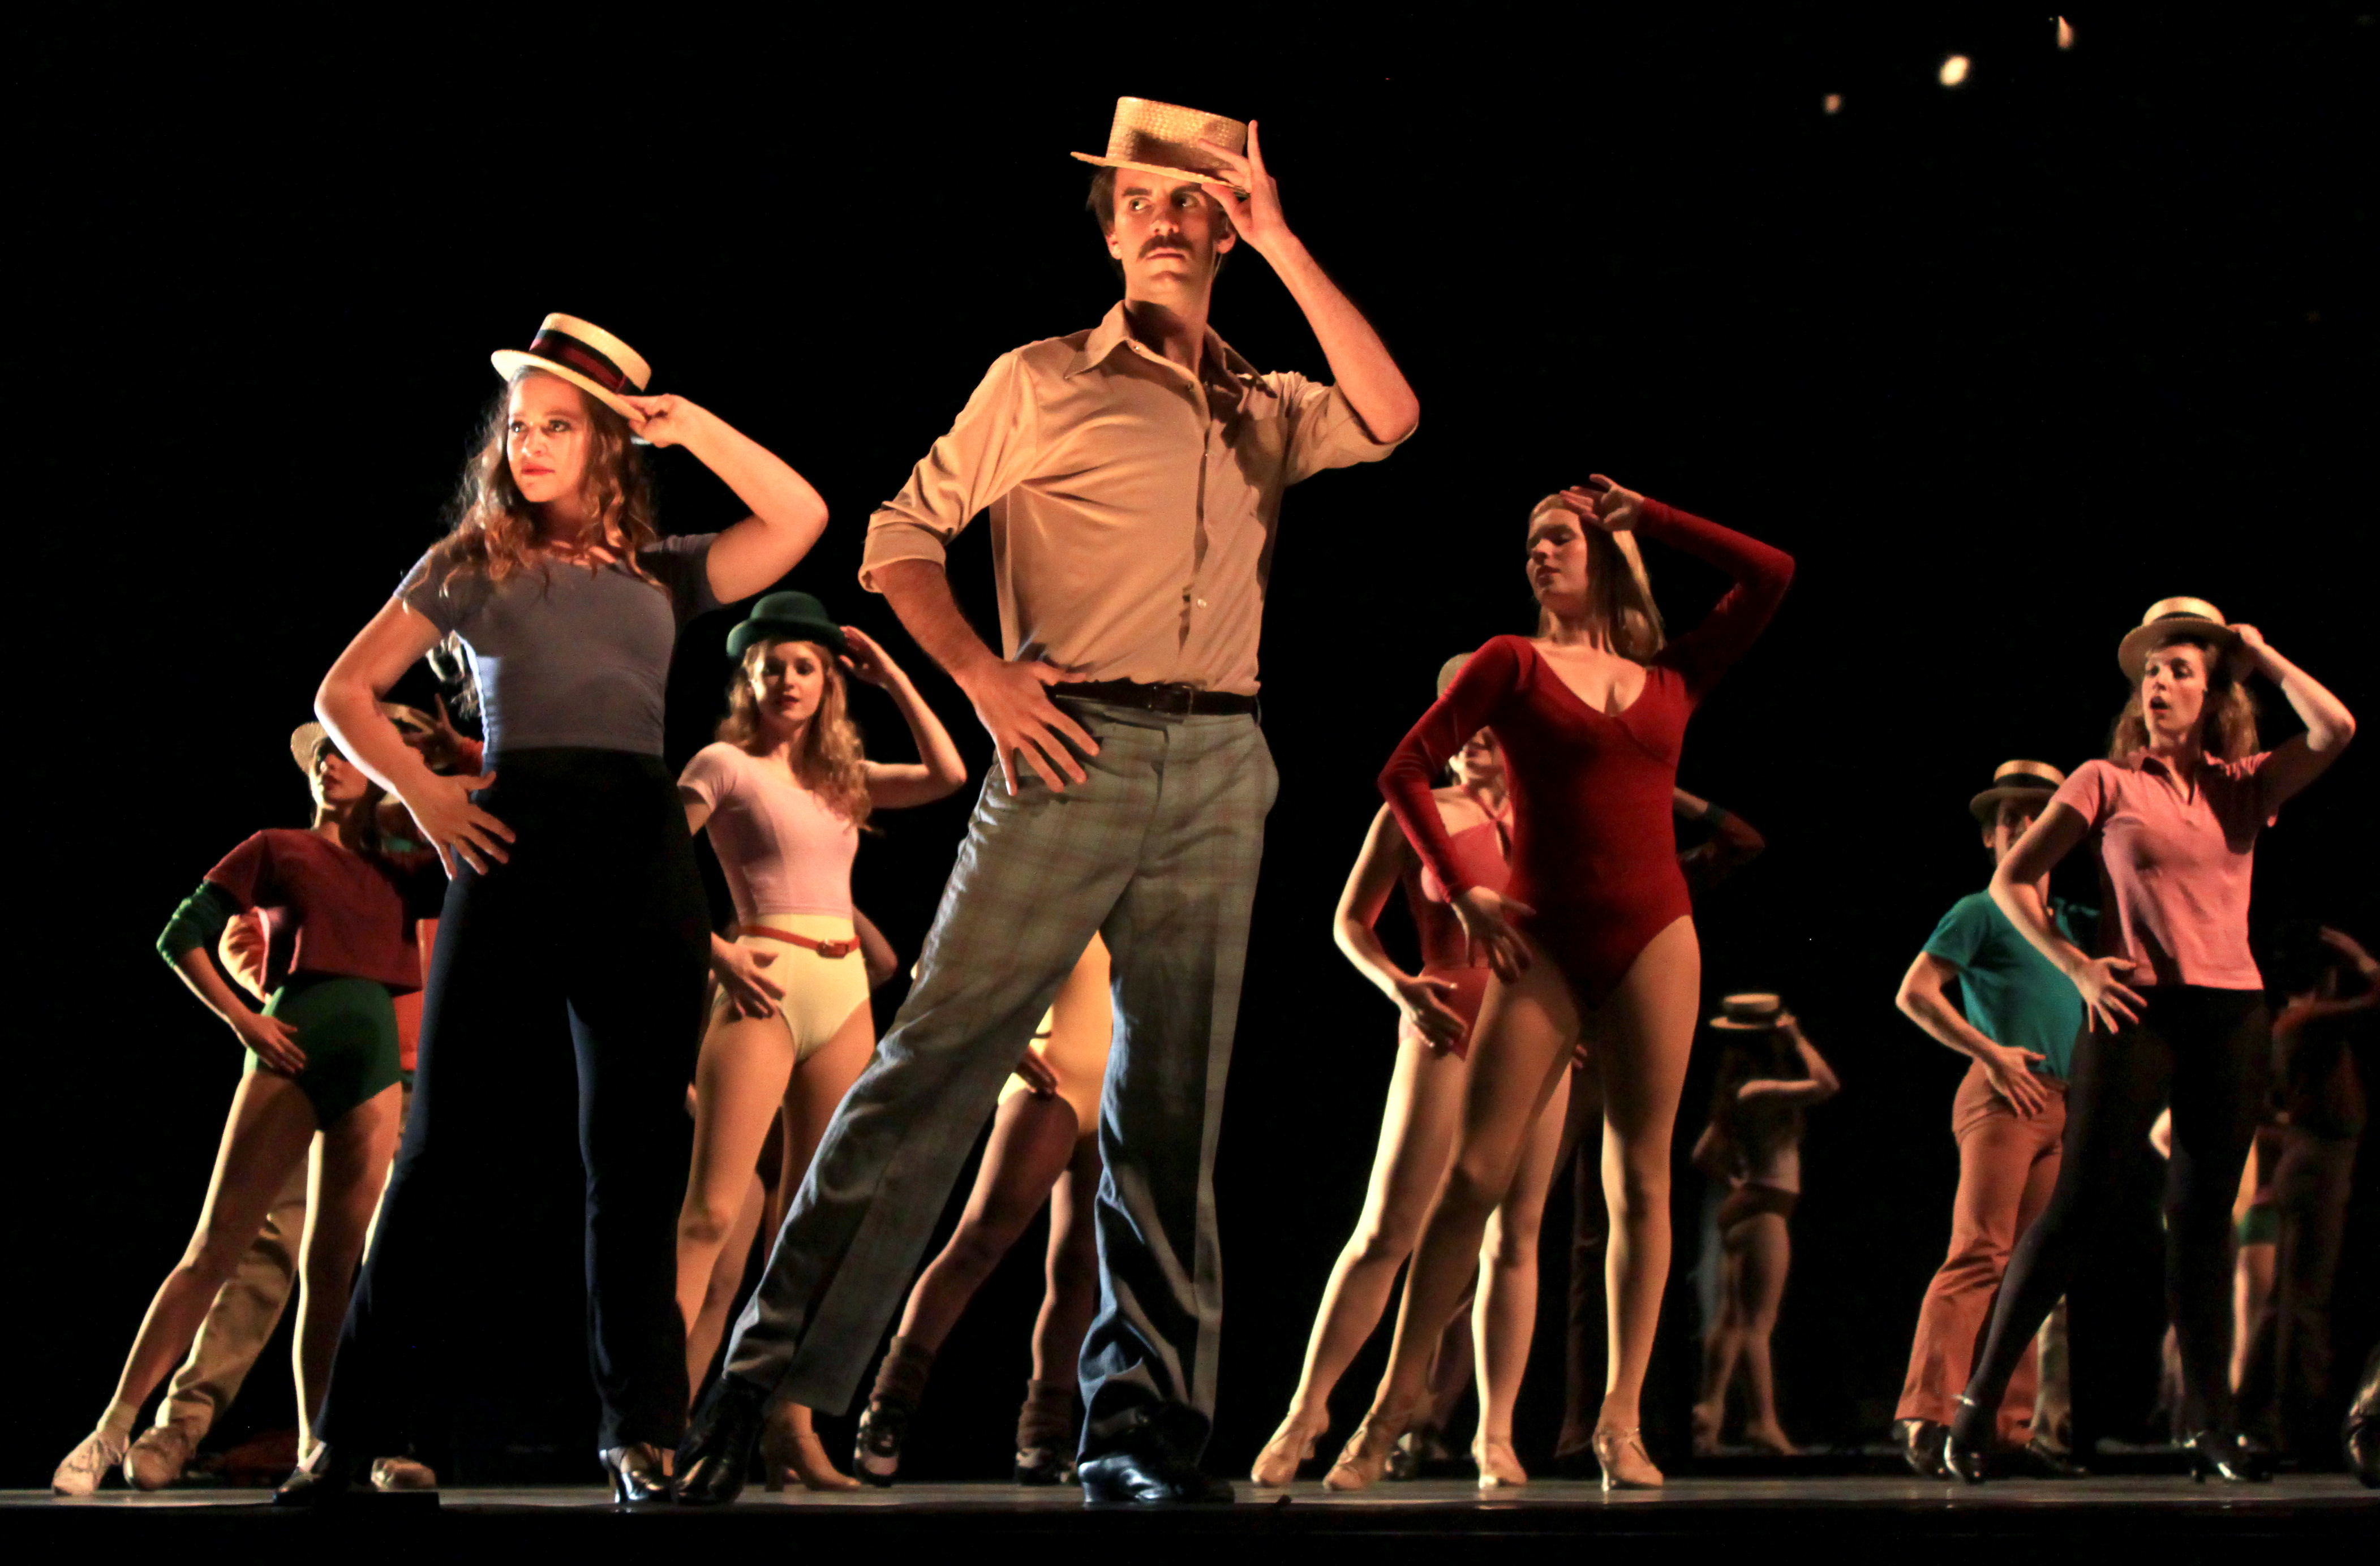 All aboard for a most entertaining 3-day Spring getaway to see the best musicals in Ontario! Tripsetter Inc has specialised in creating and arranging unique and affordable group and individual travel experiences ranging from day-trips and overnight tours to luxury international cruises.